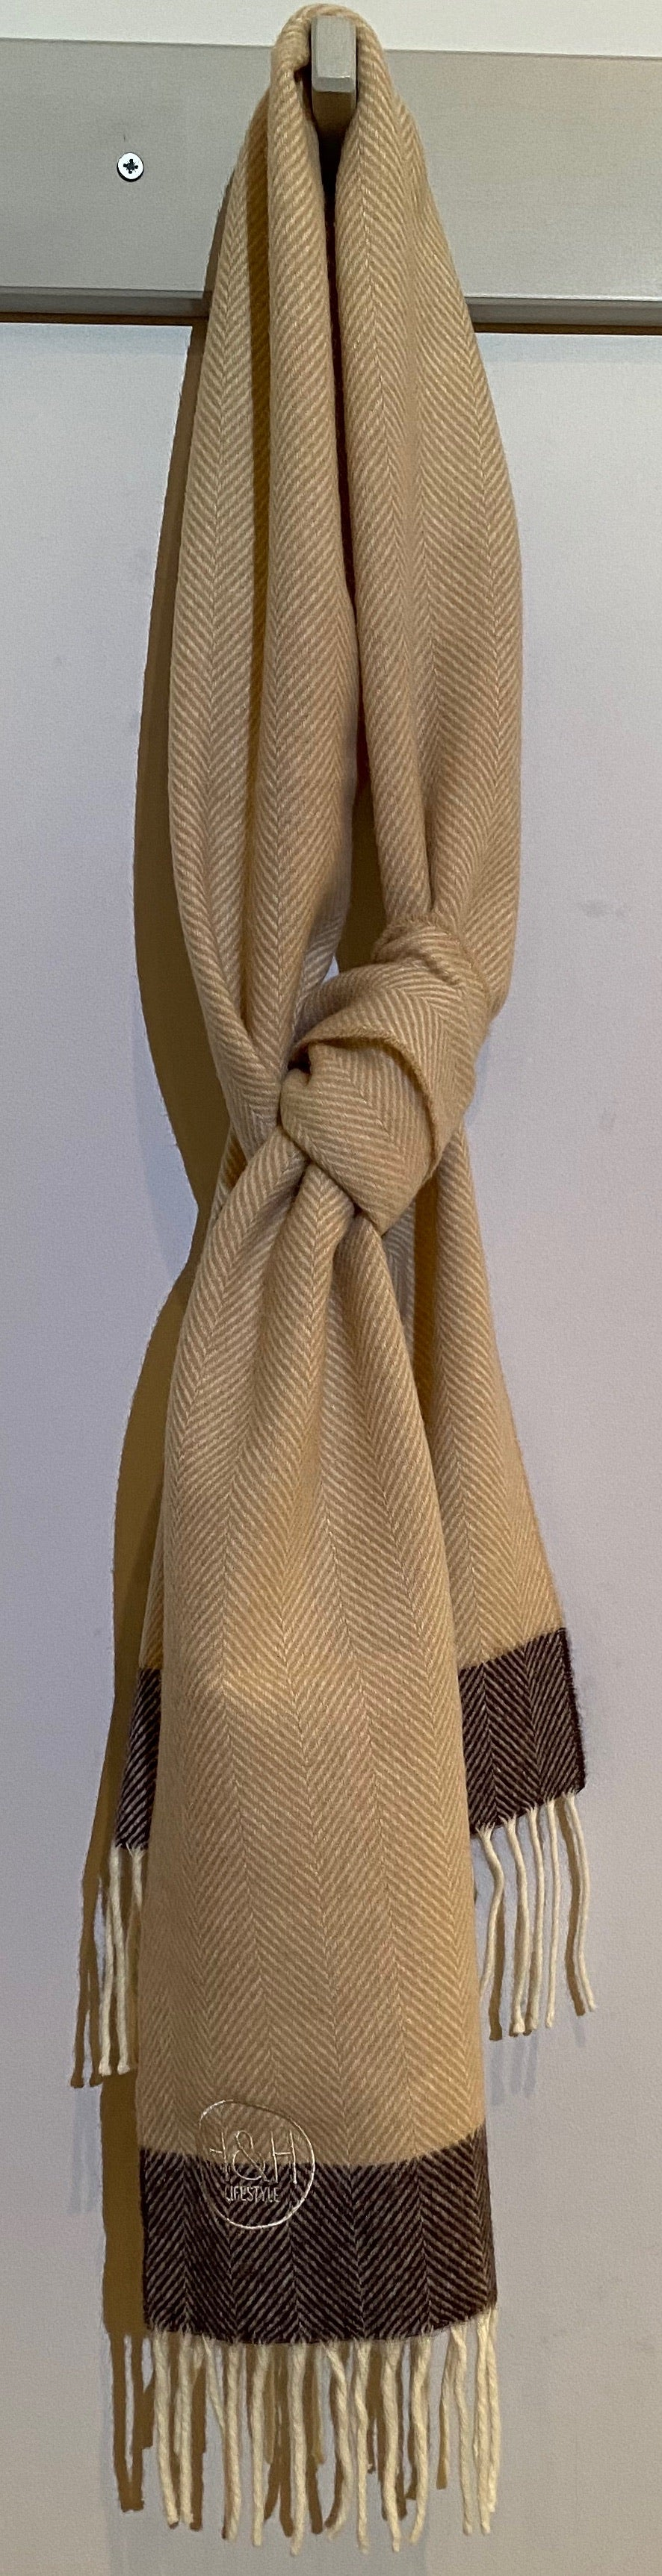 The Knutsford - Lambswool Scarf